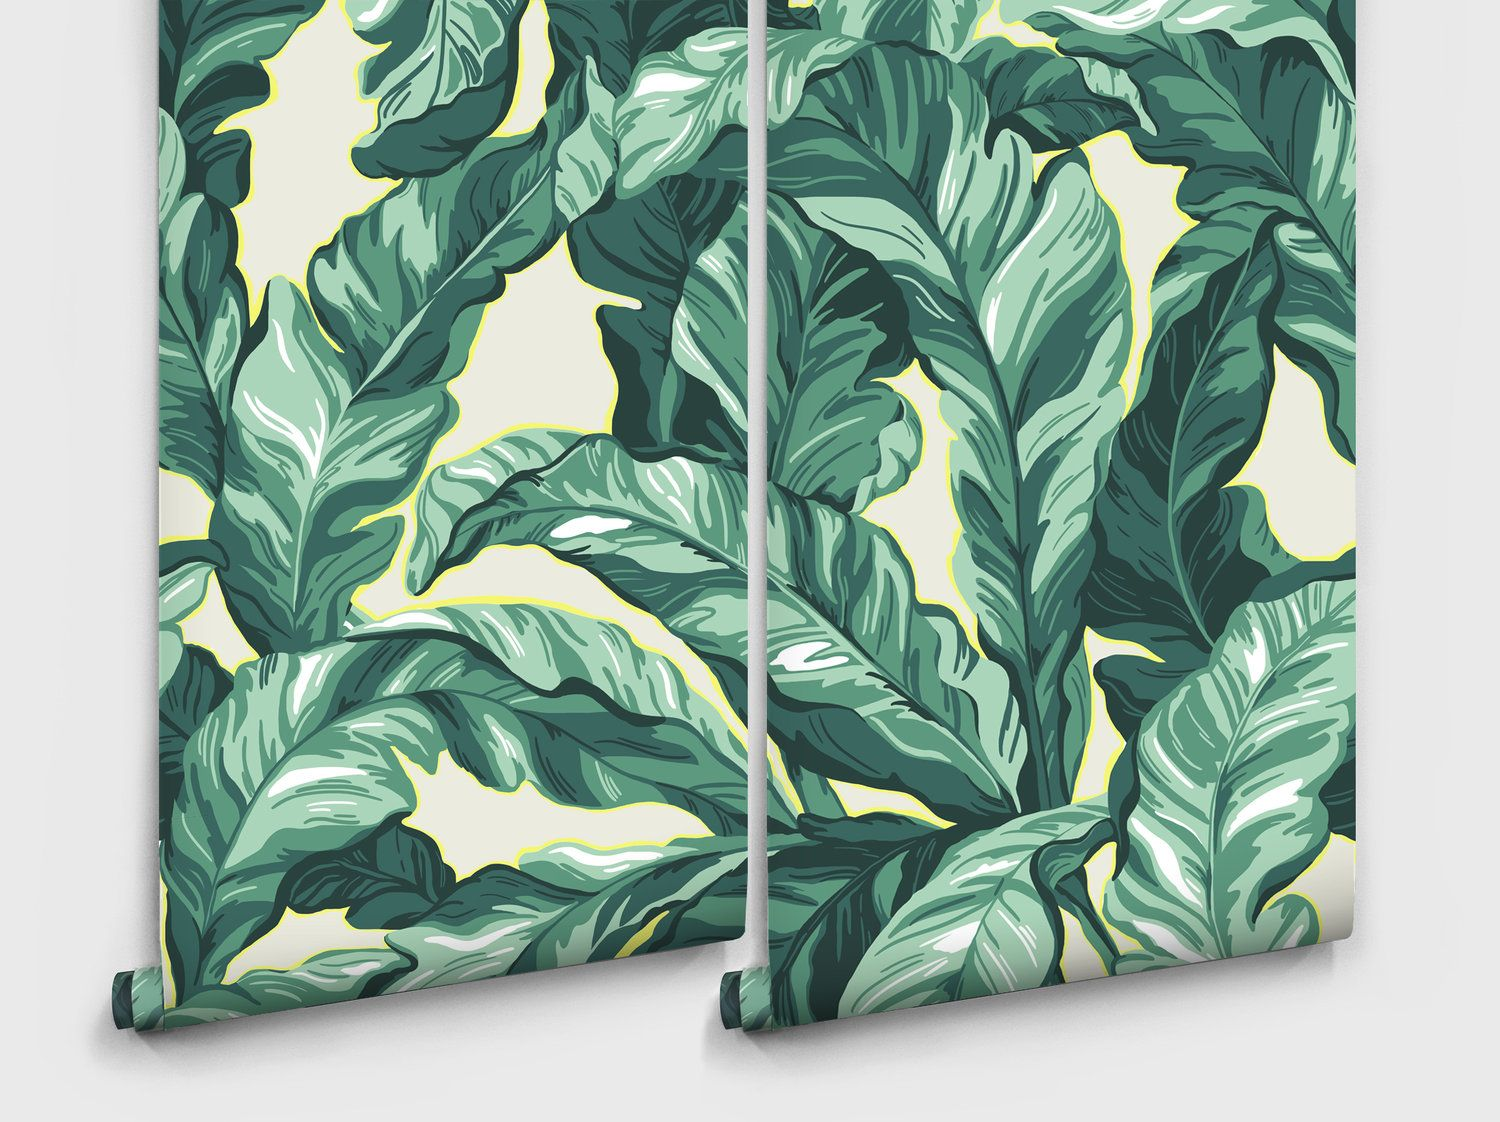 Palm leaf removable wallpaper (With images) Removable